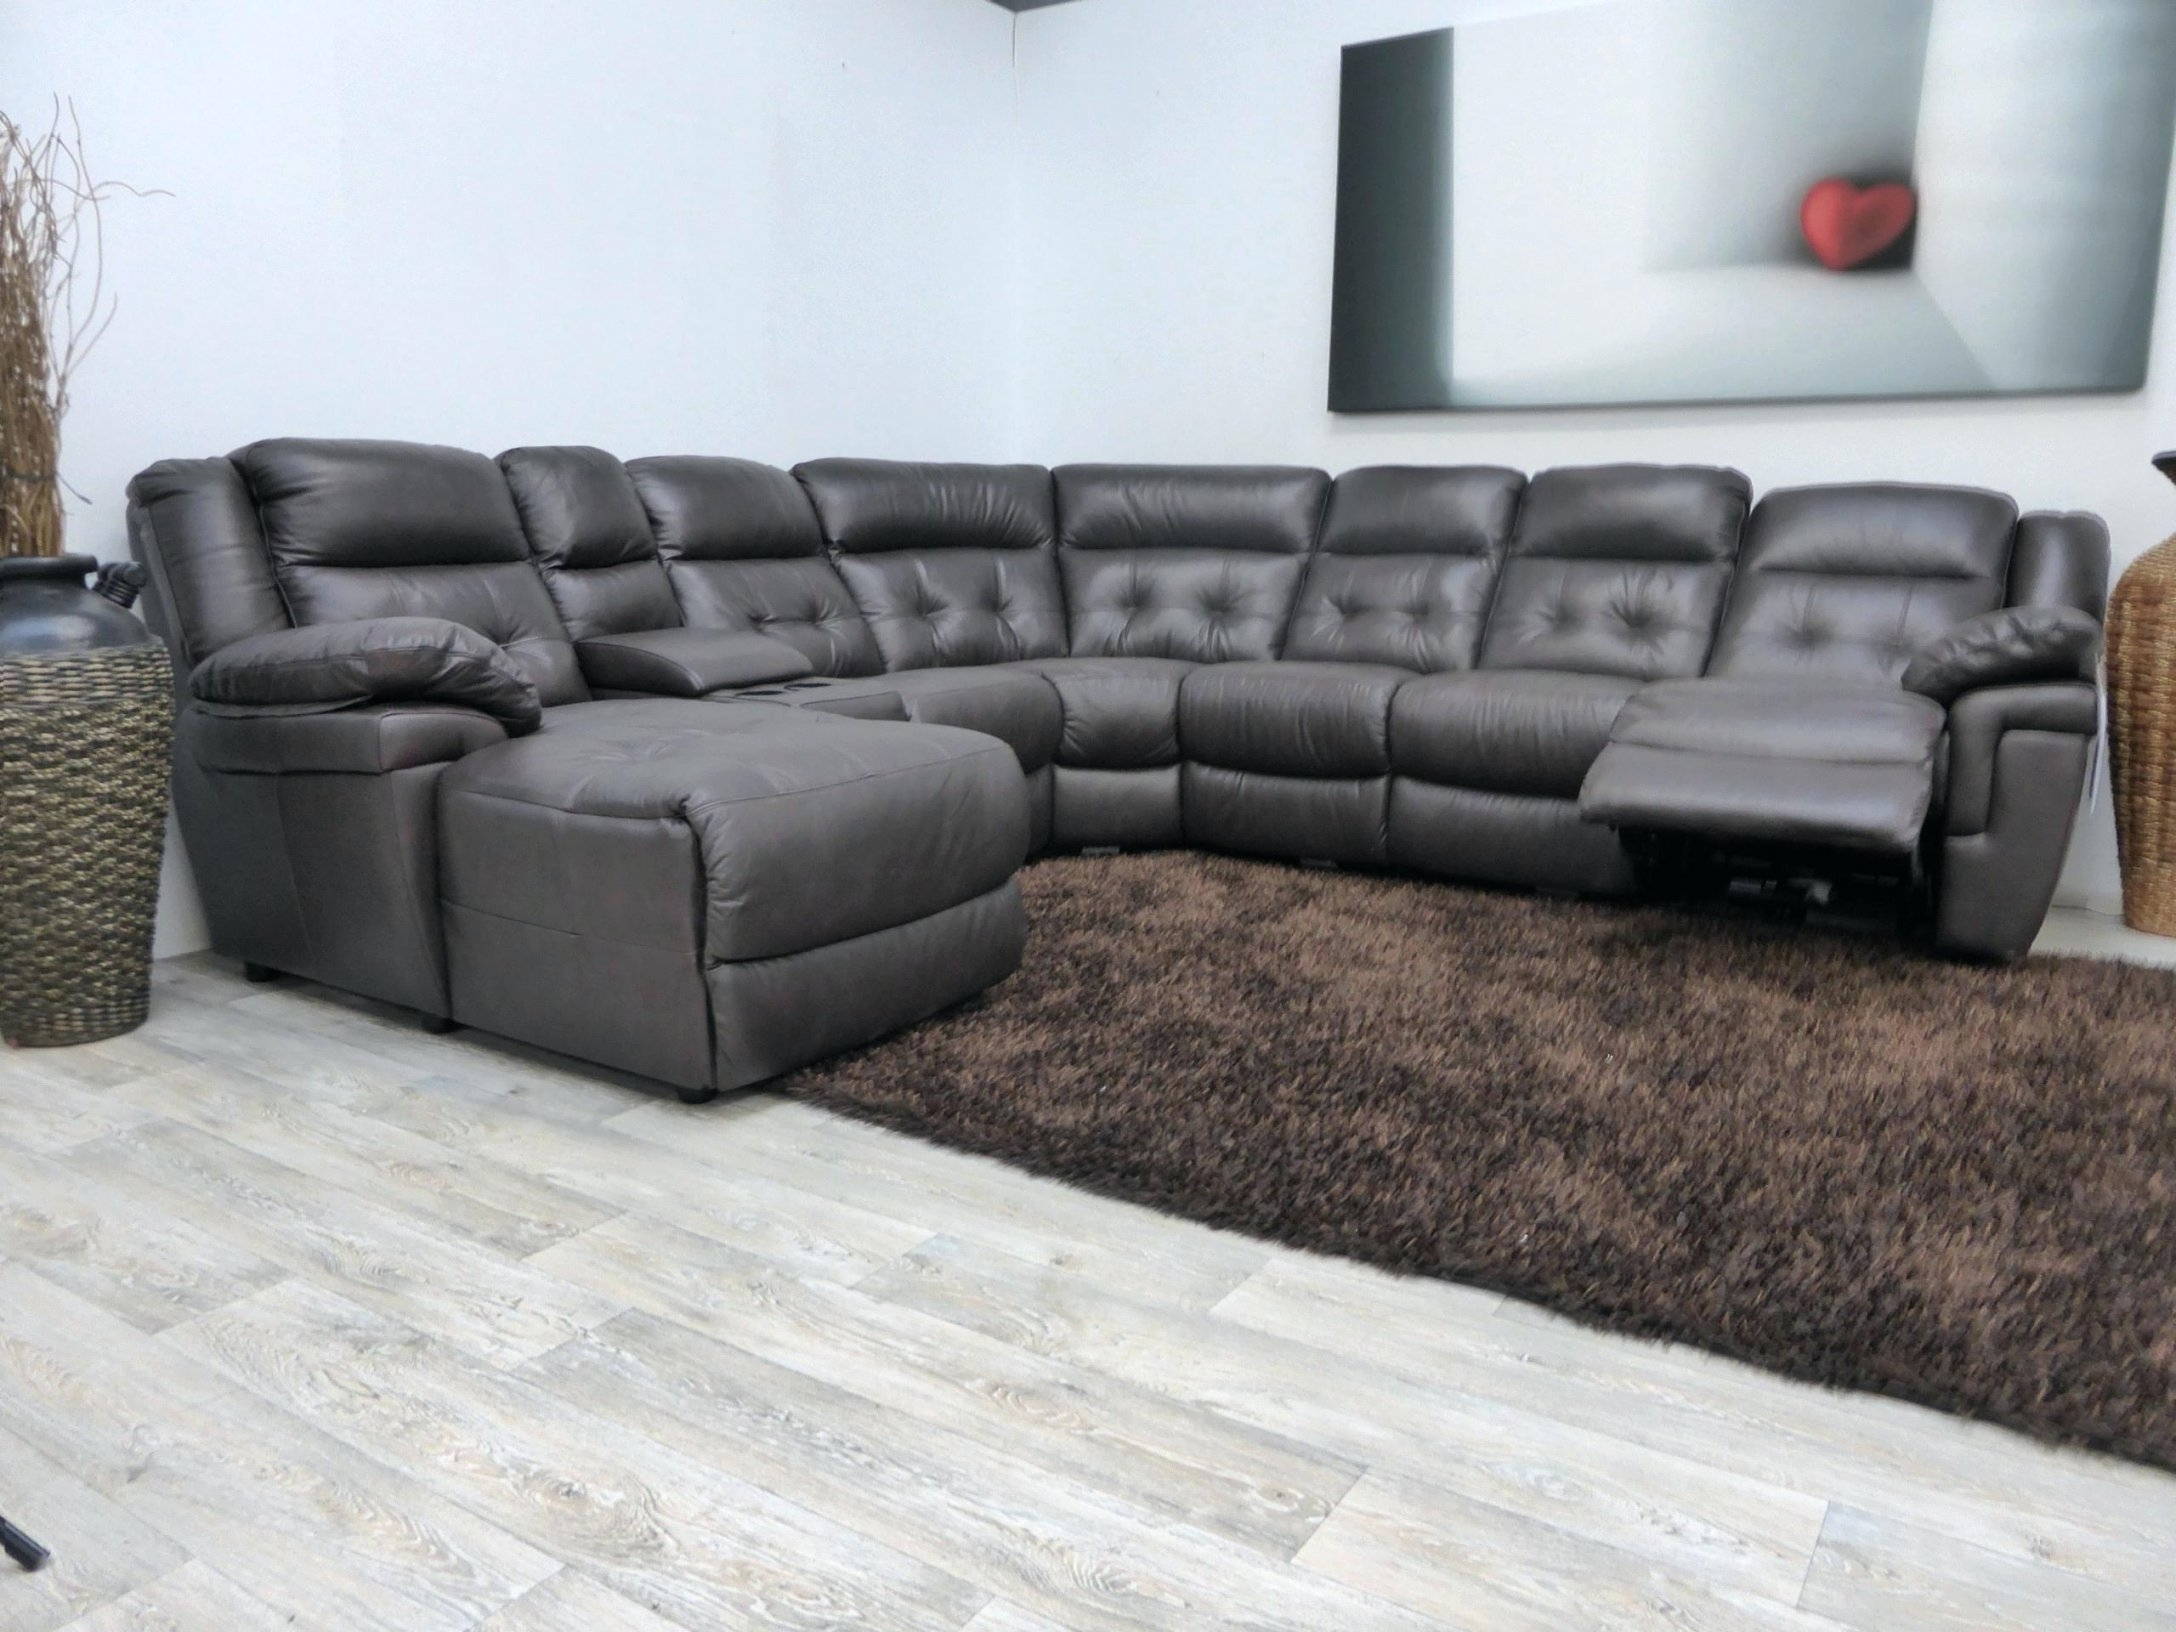 Widely Used Lazy Boy Chaise Lounges Inside 5 Piece Reclining Sectional Sofala Z Boy Lazy Chaise For Lazy Boy (View 14 of 15)